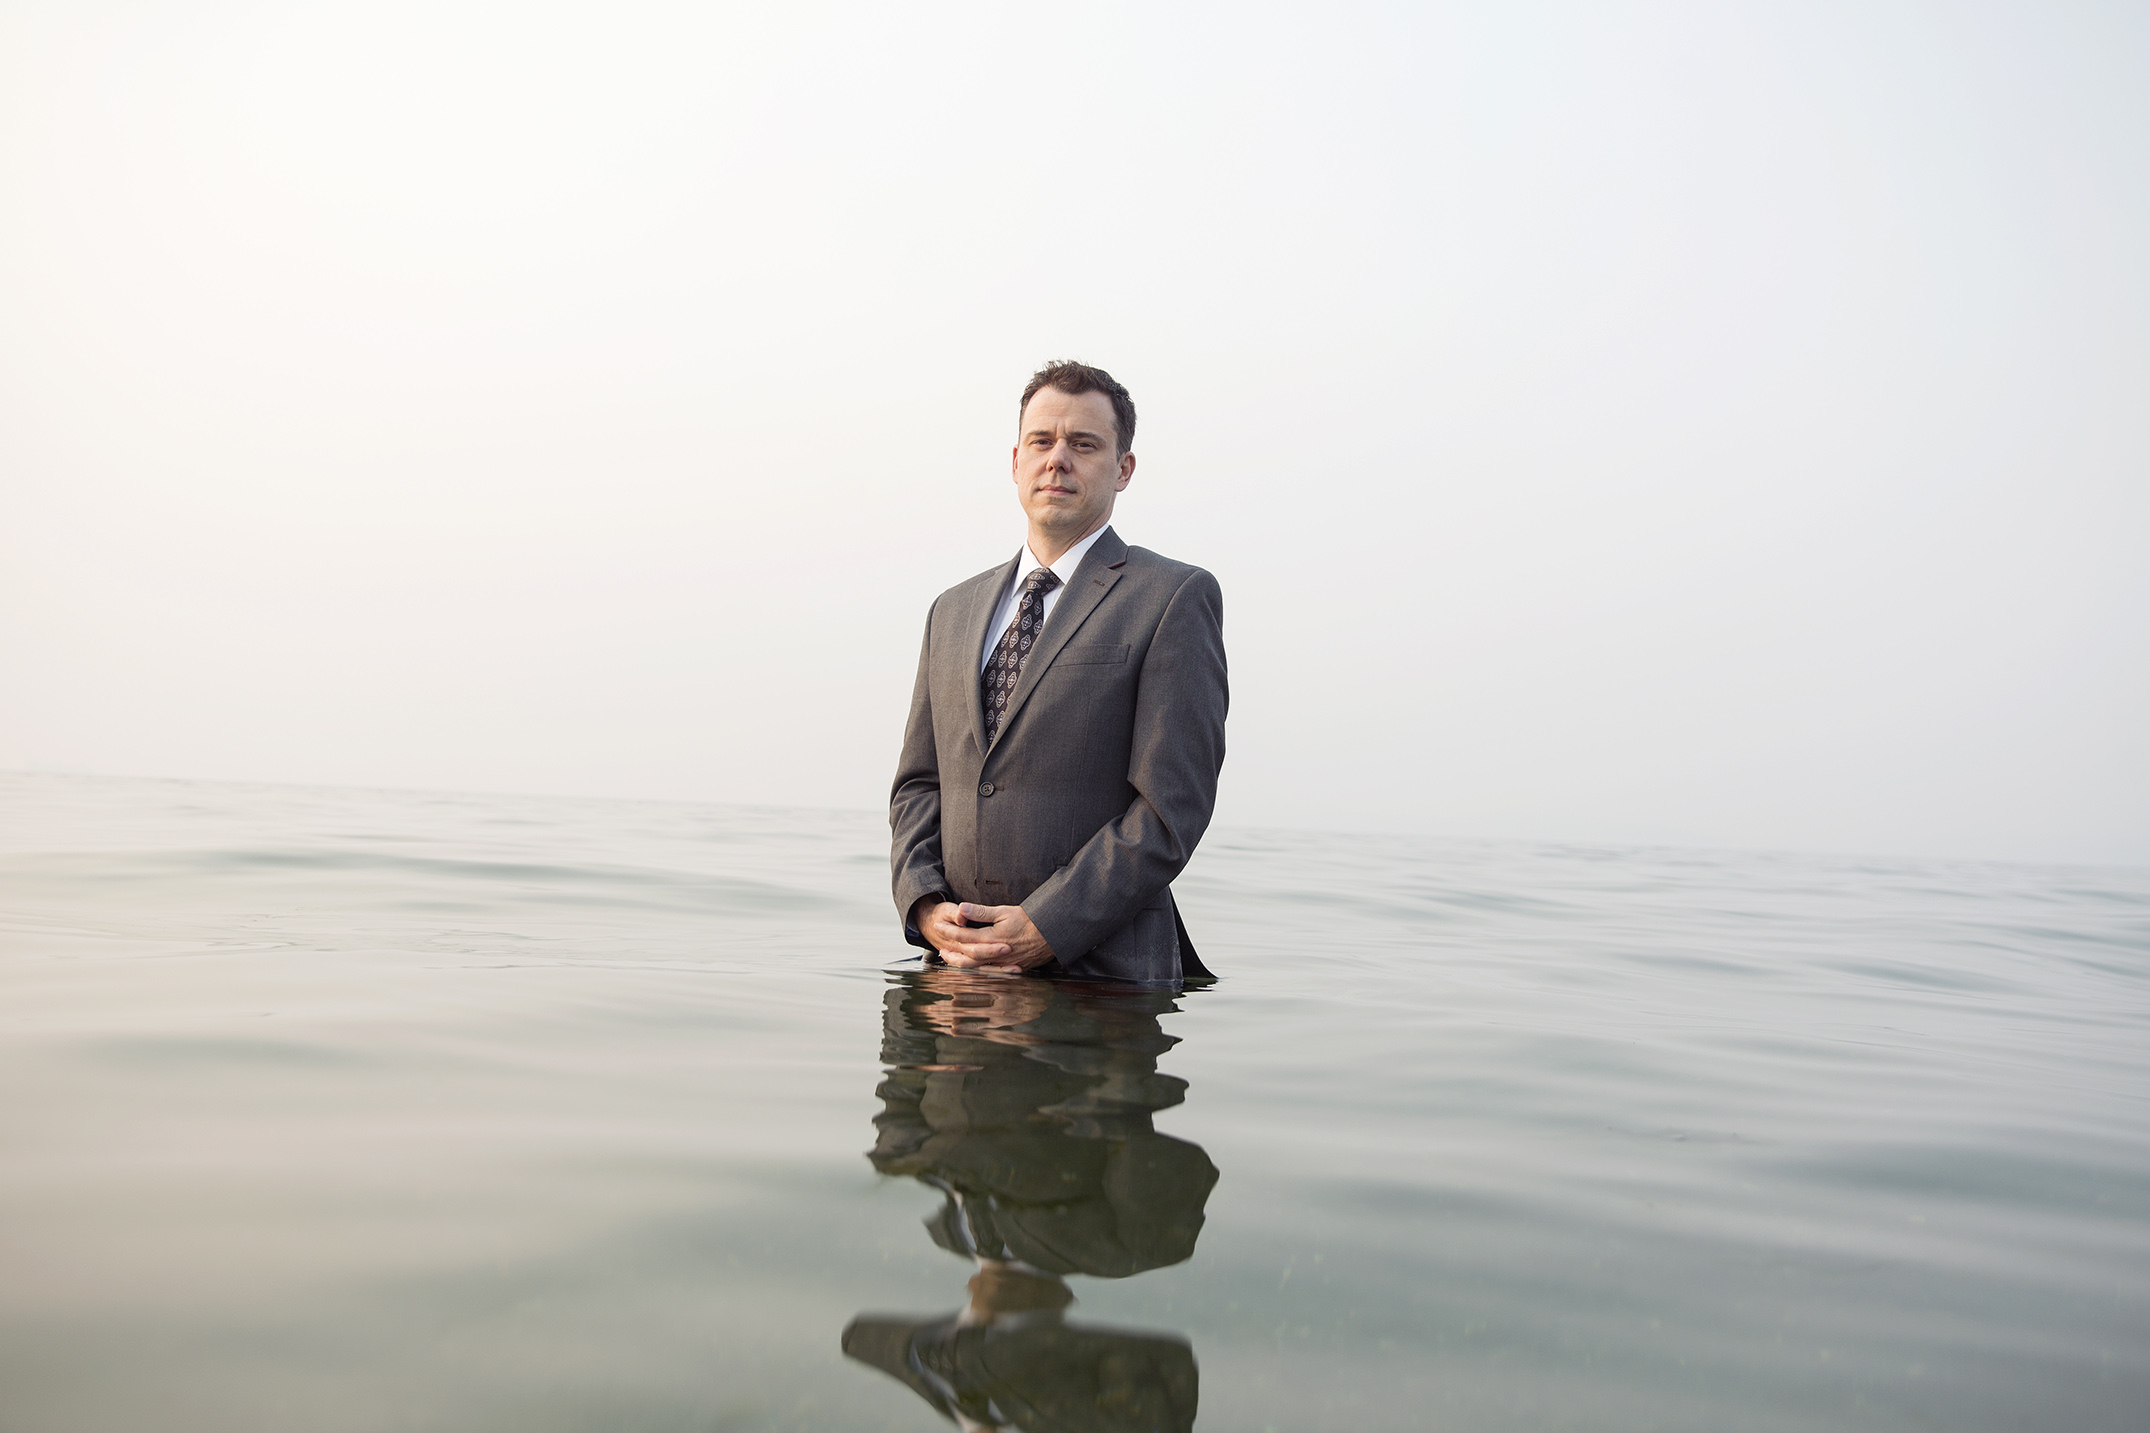 Mike Kane | Funeral director half-submerged in Puget Sound | Seattle documentary, editorial, and commercial photography